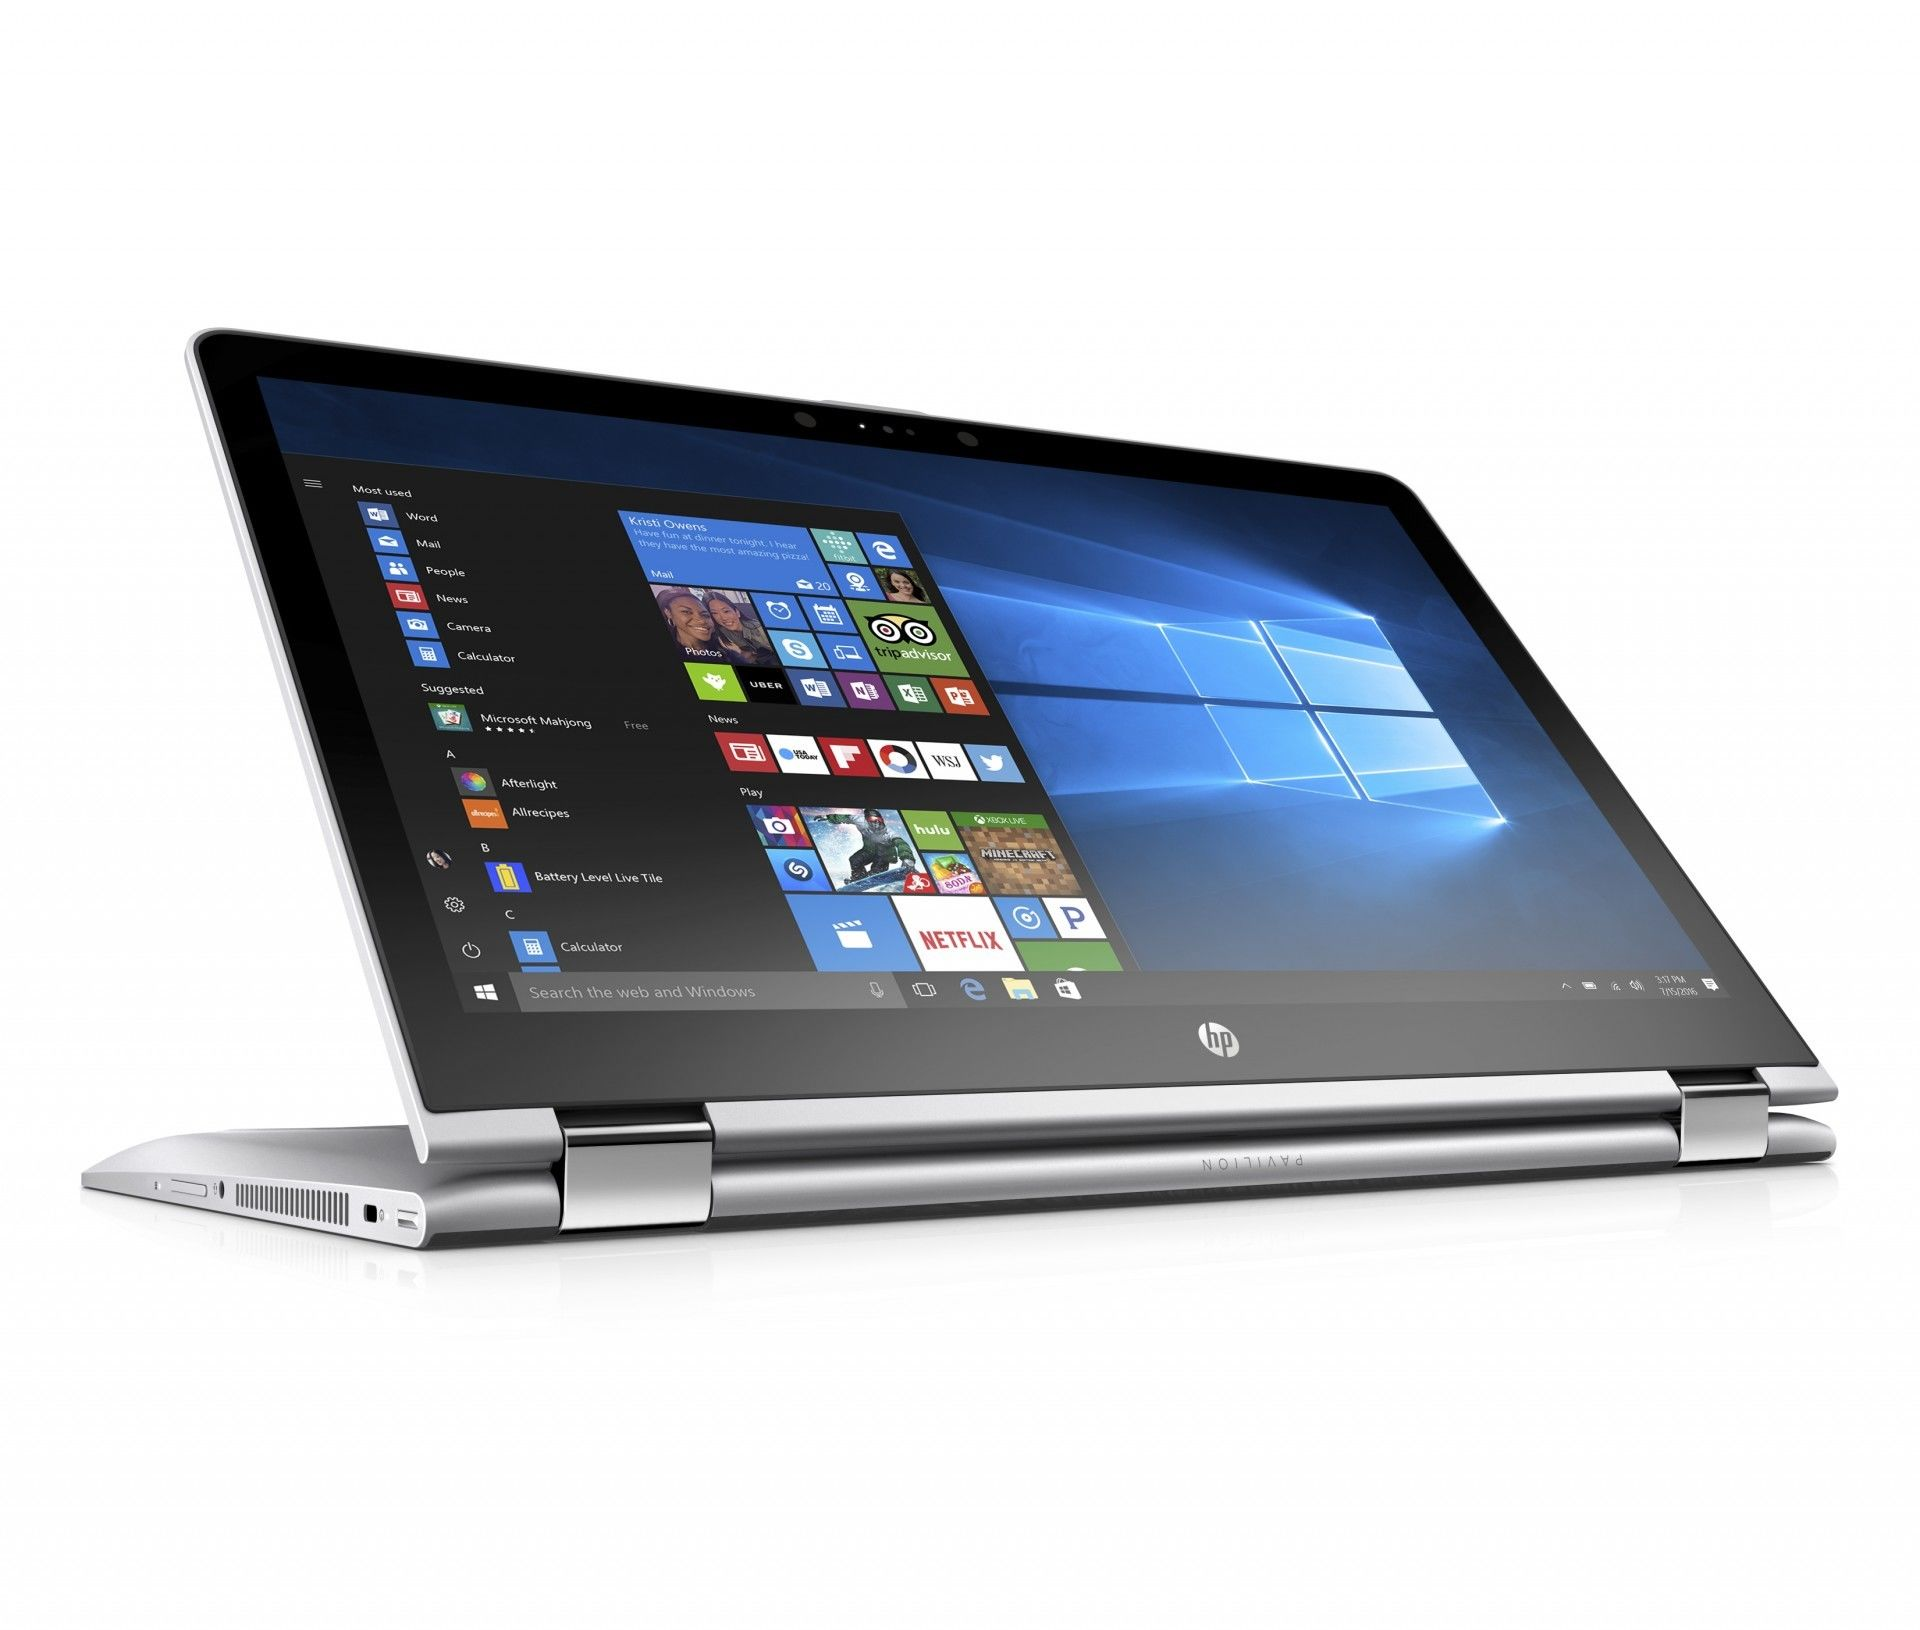 HP Pavilion x360 15-br004nw 2HP44EAR